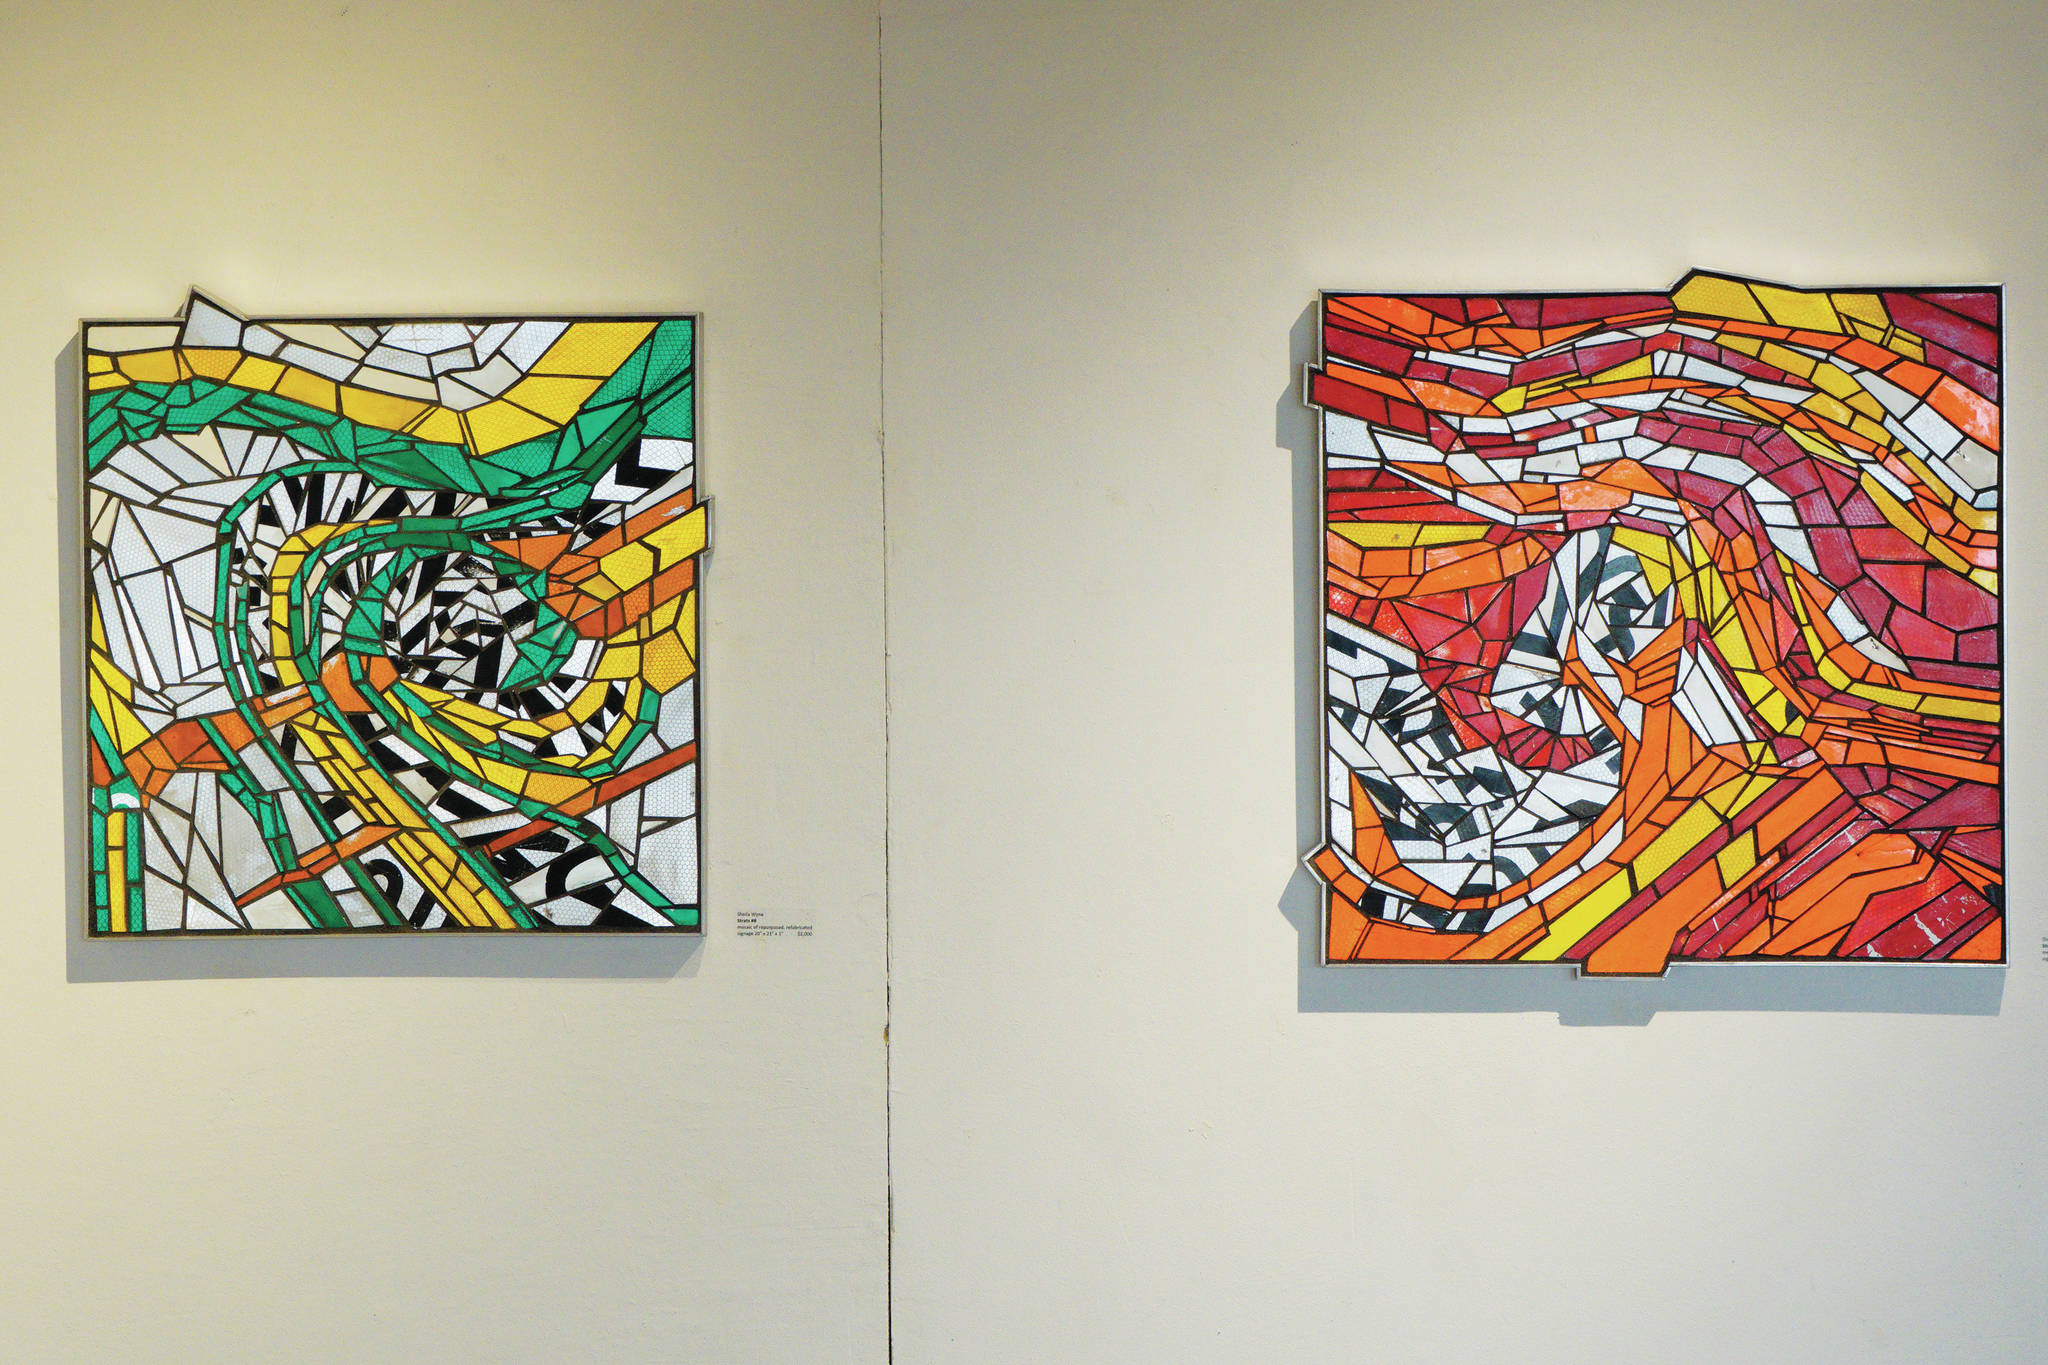 """Sheila Wyne's """"Strata #8,"""" left, and """"Strata #9,"""" right, are part of her show that opened Friday, Aug. 6, 2021, at Bunnell Street Arts Center. (Photo by Michael Armstrong/Homer News)"""